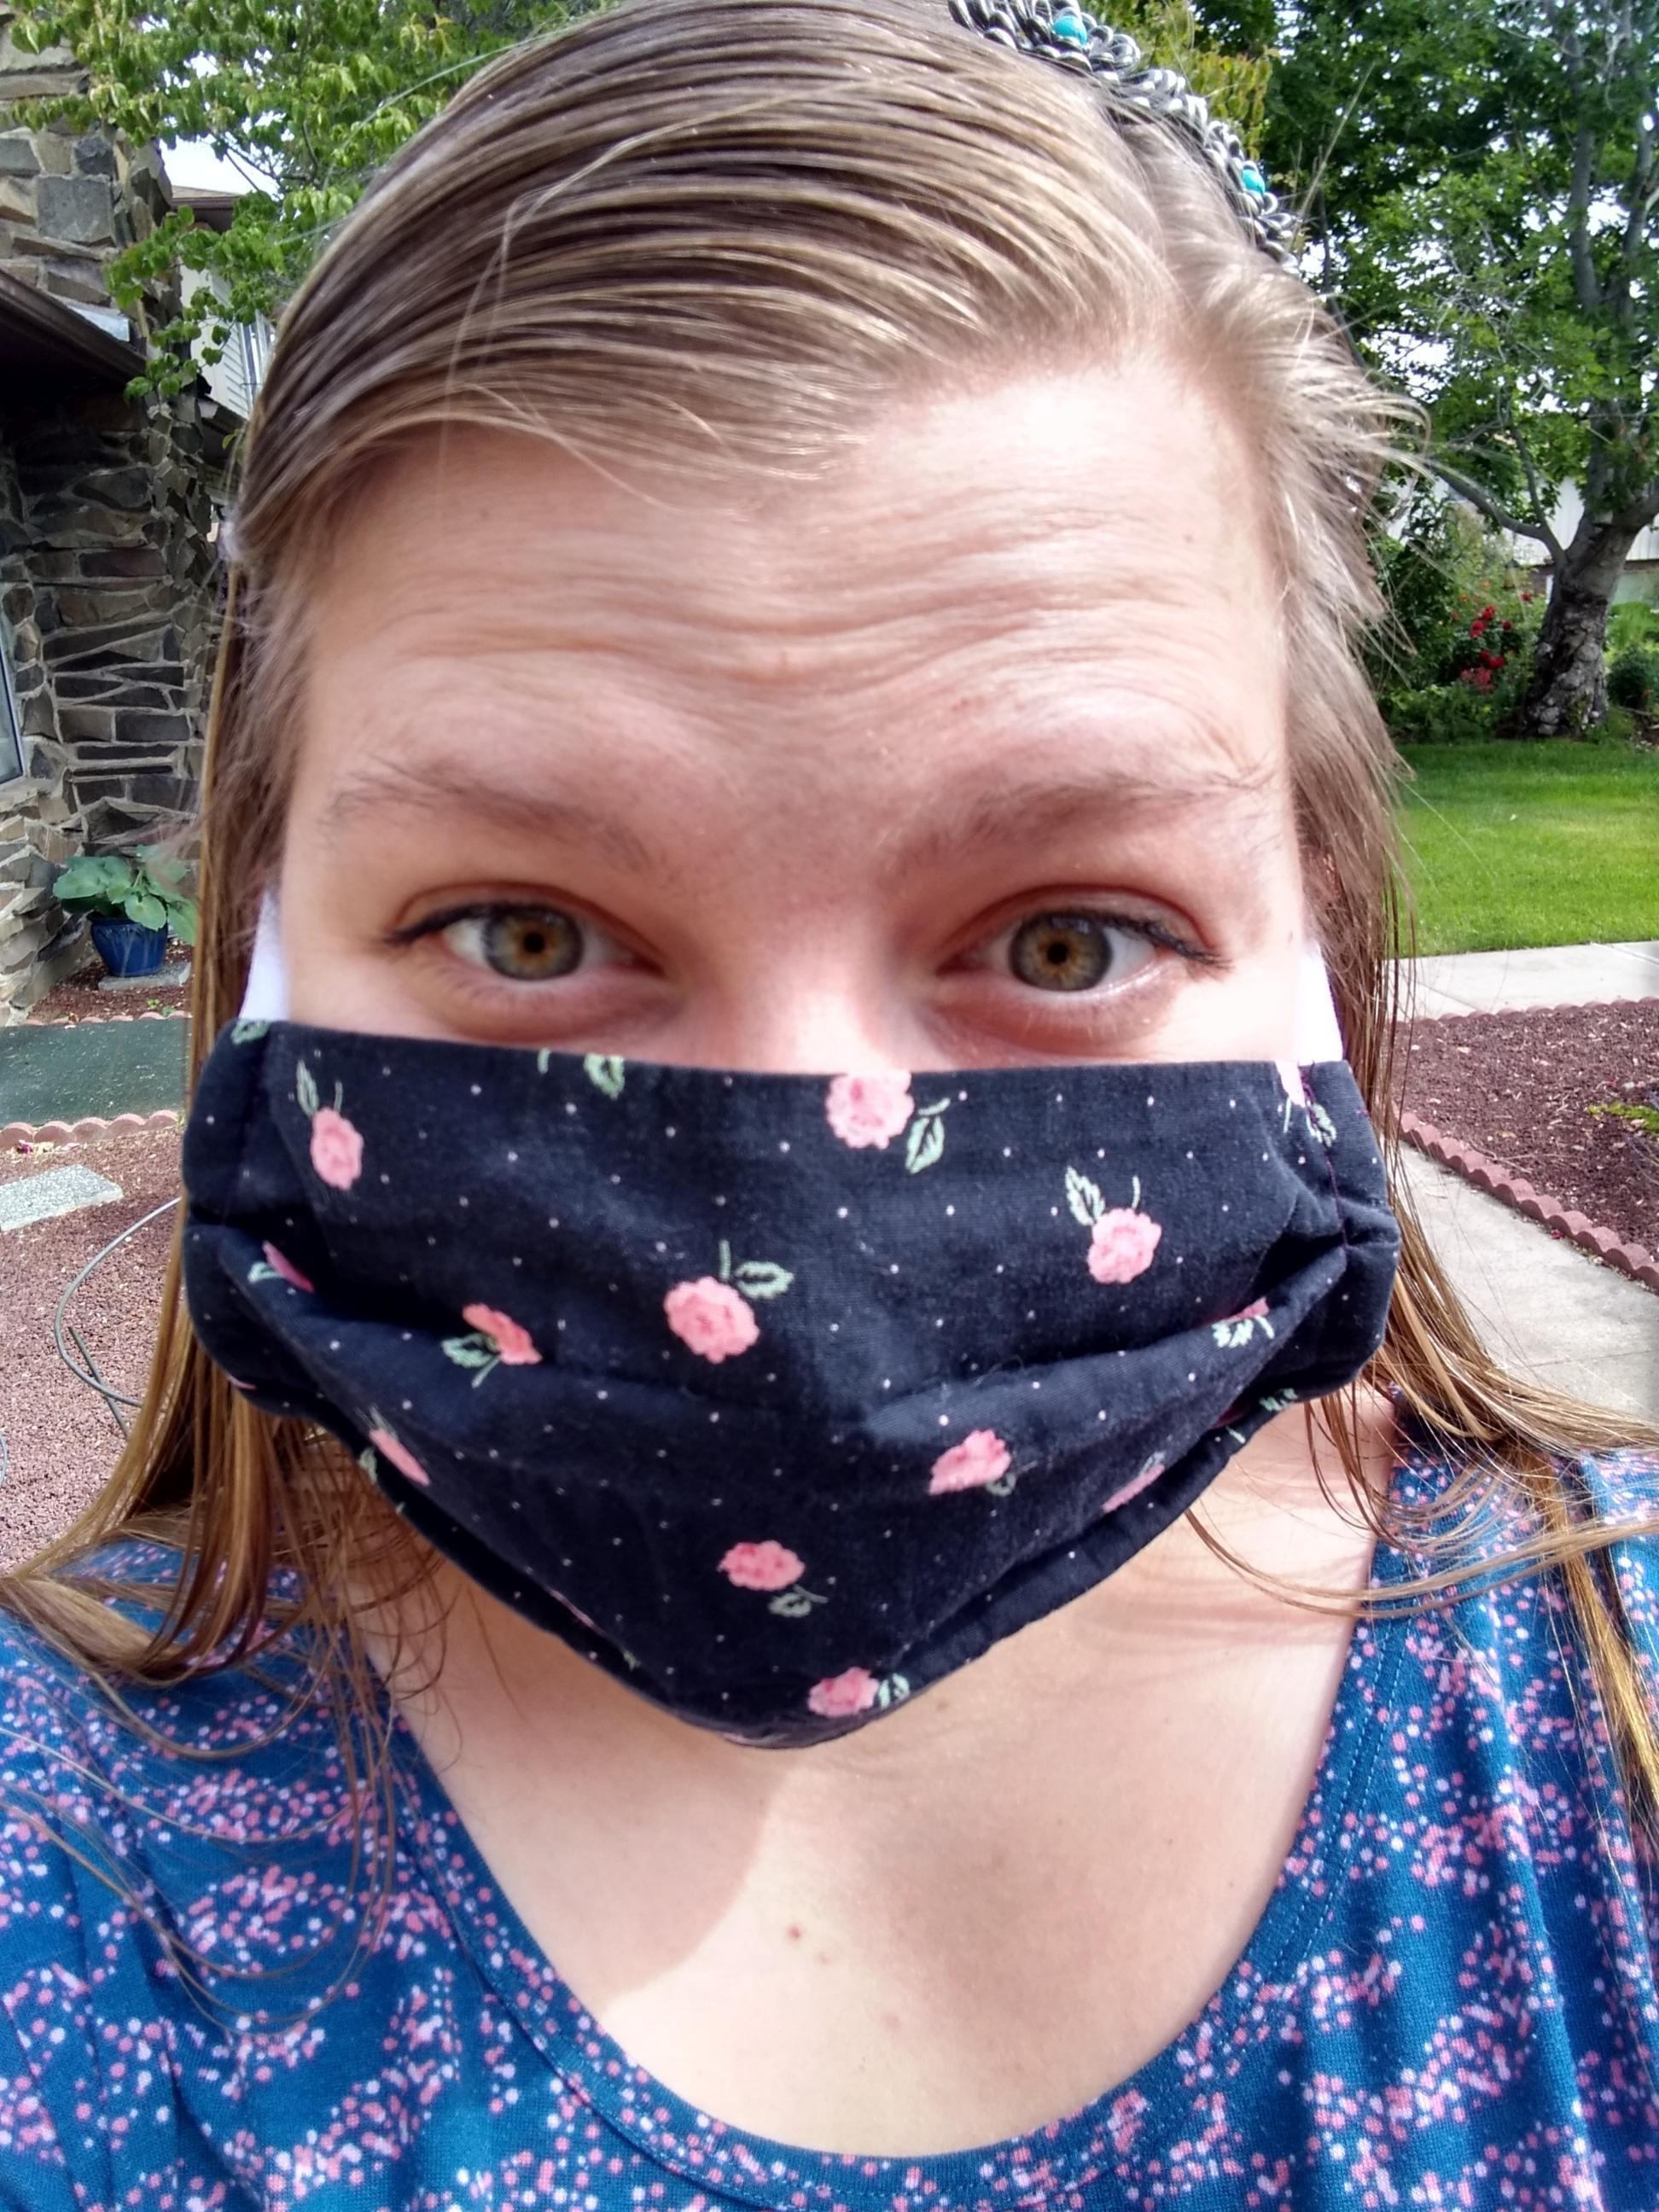 staff member selfie wearing mask